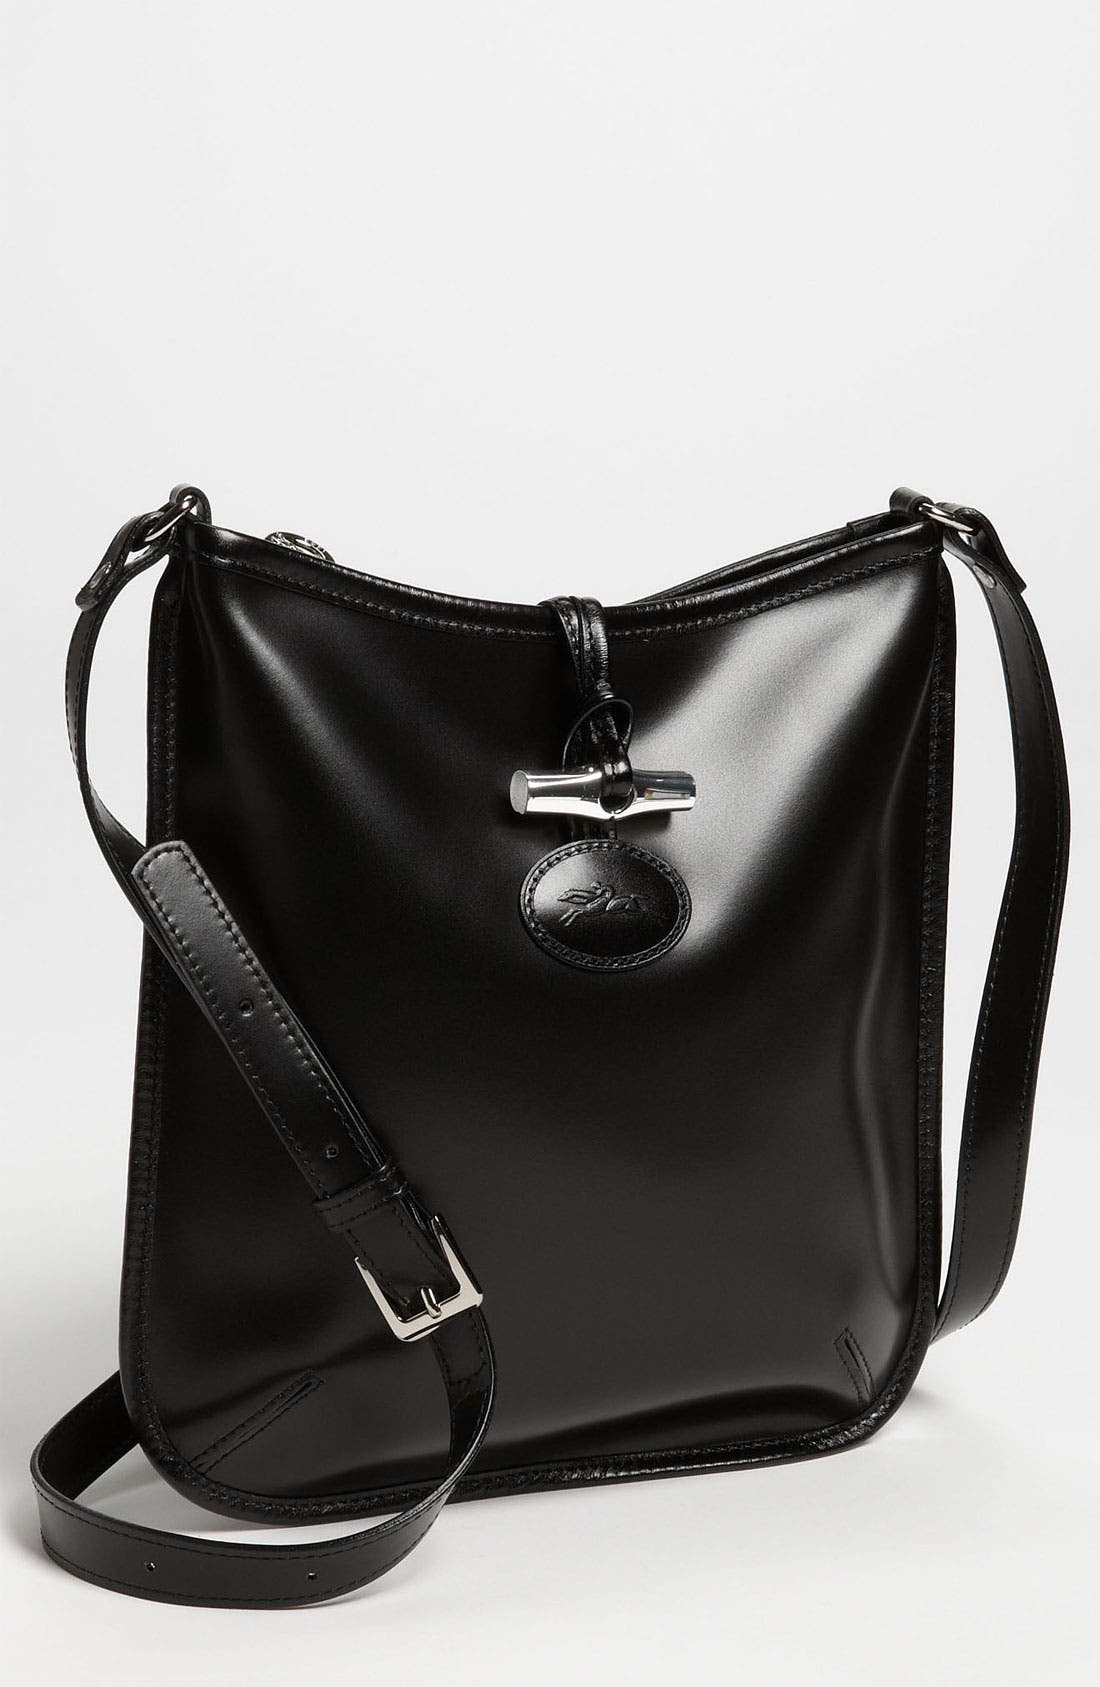 Main Image - Longchamp 'LM Jacquard' Crossbody Bag